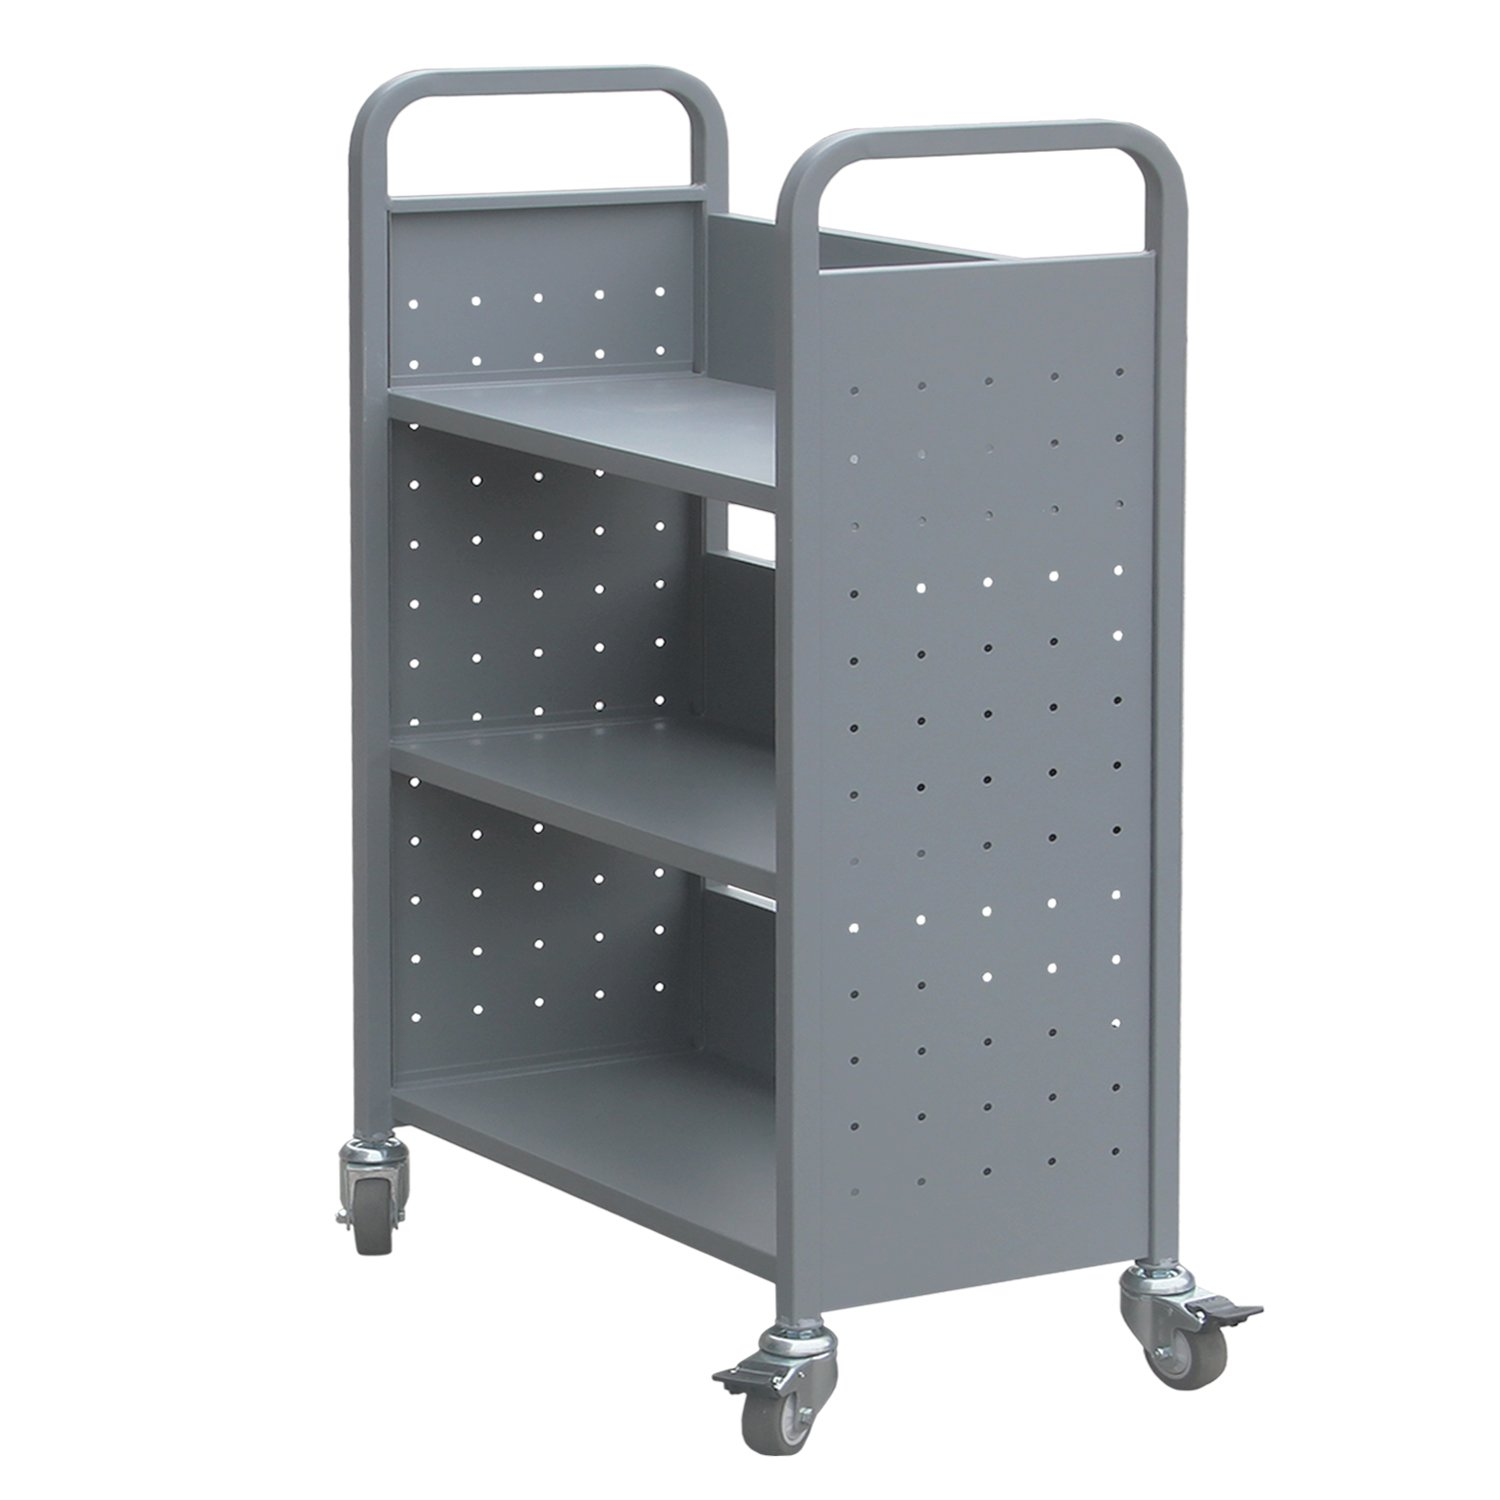 Rolling Library Book Cart Single Sided Flat Shelves with Lockable Wheels,200lbs Capacity (Grey)